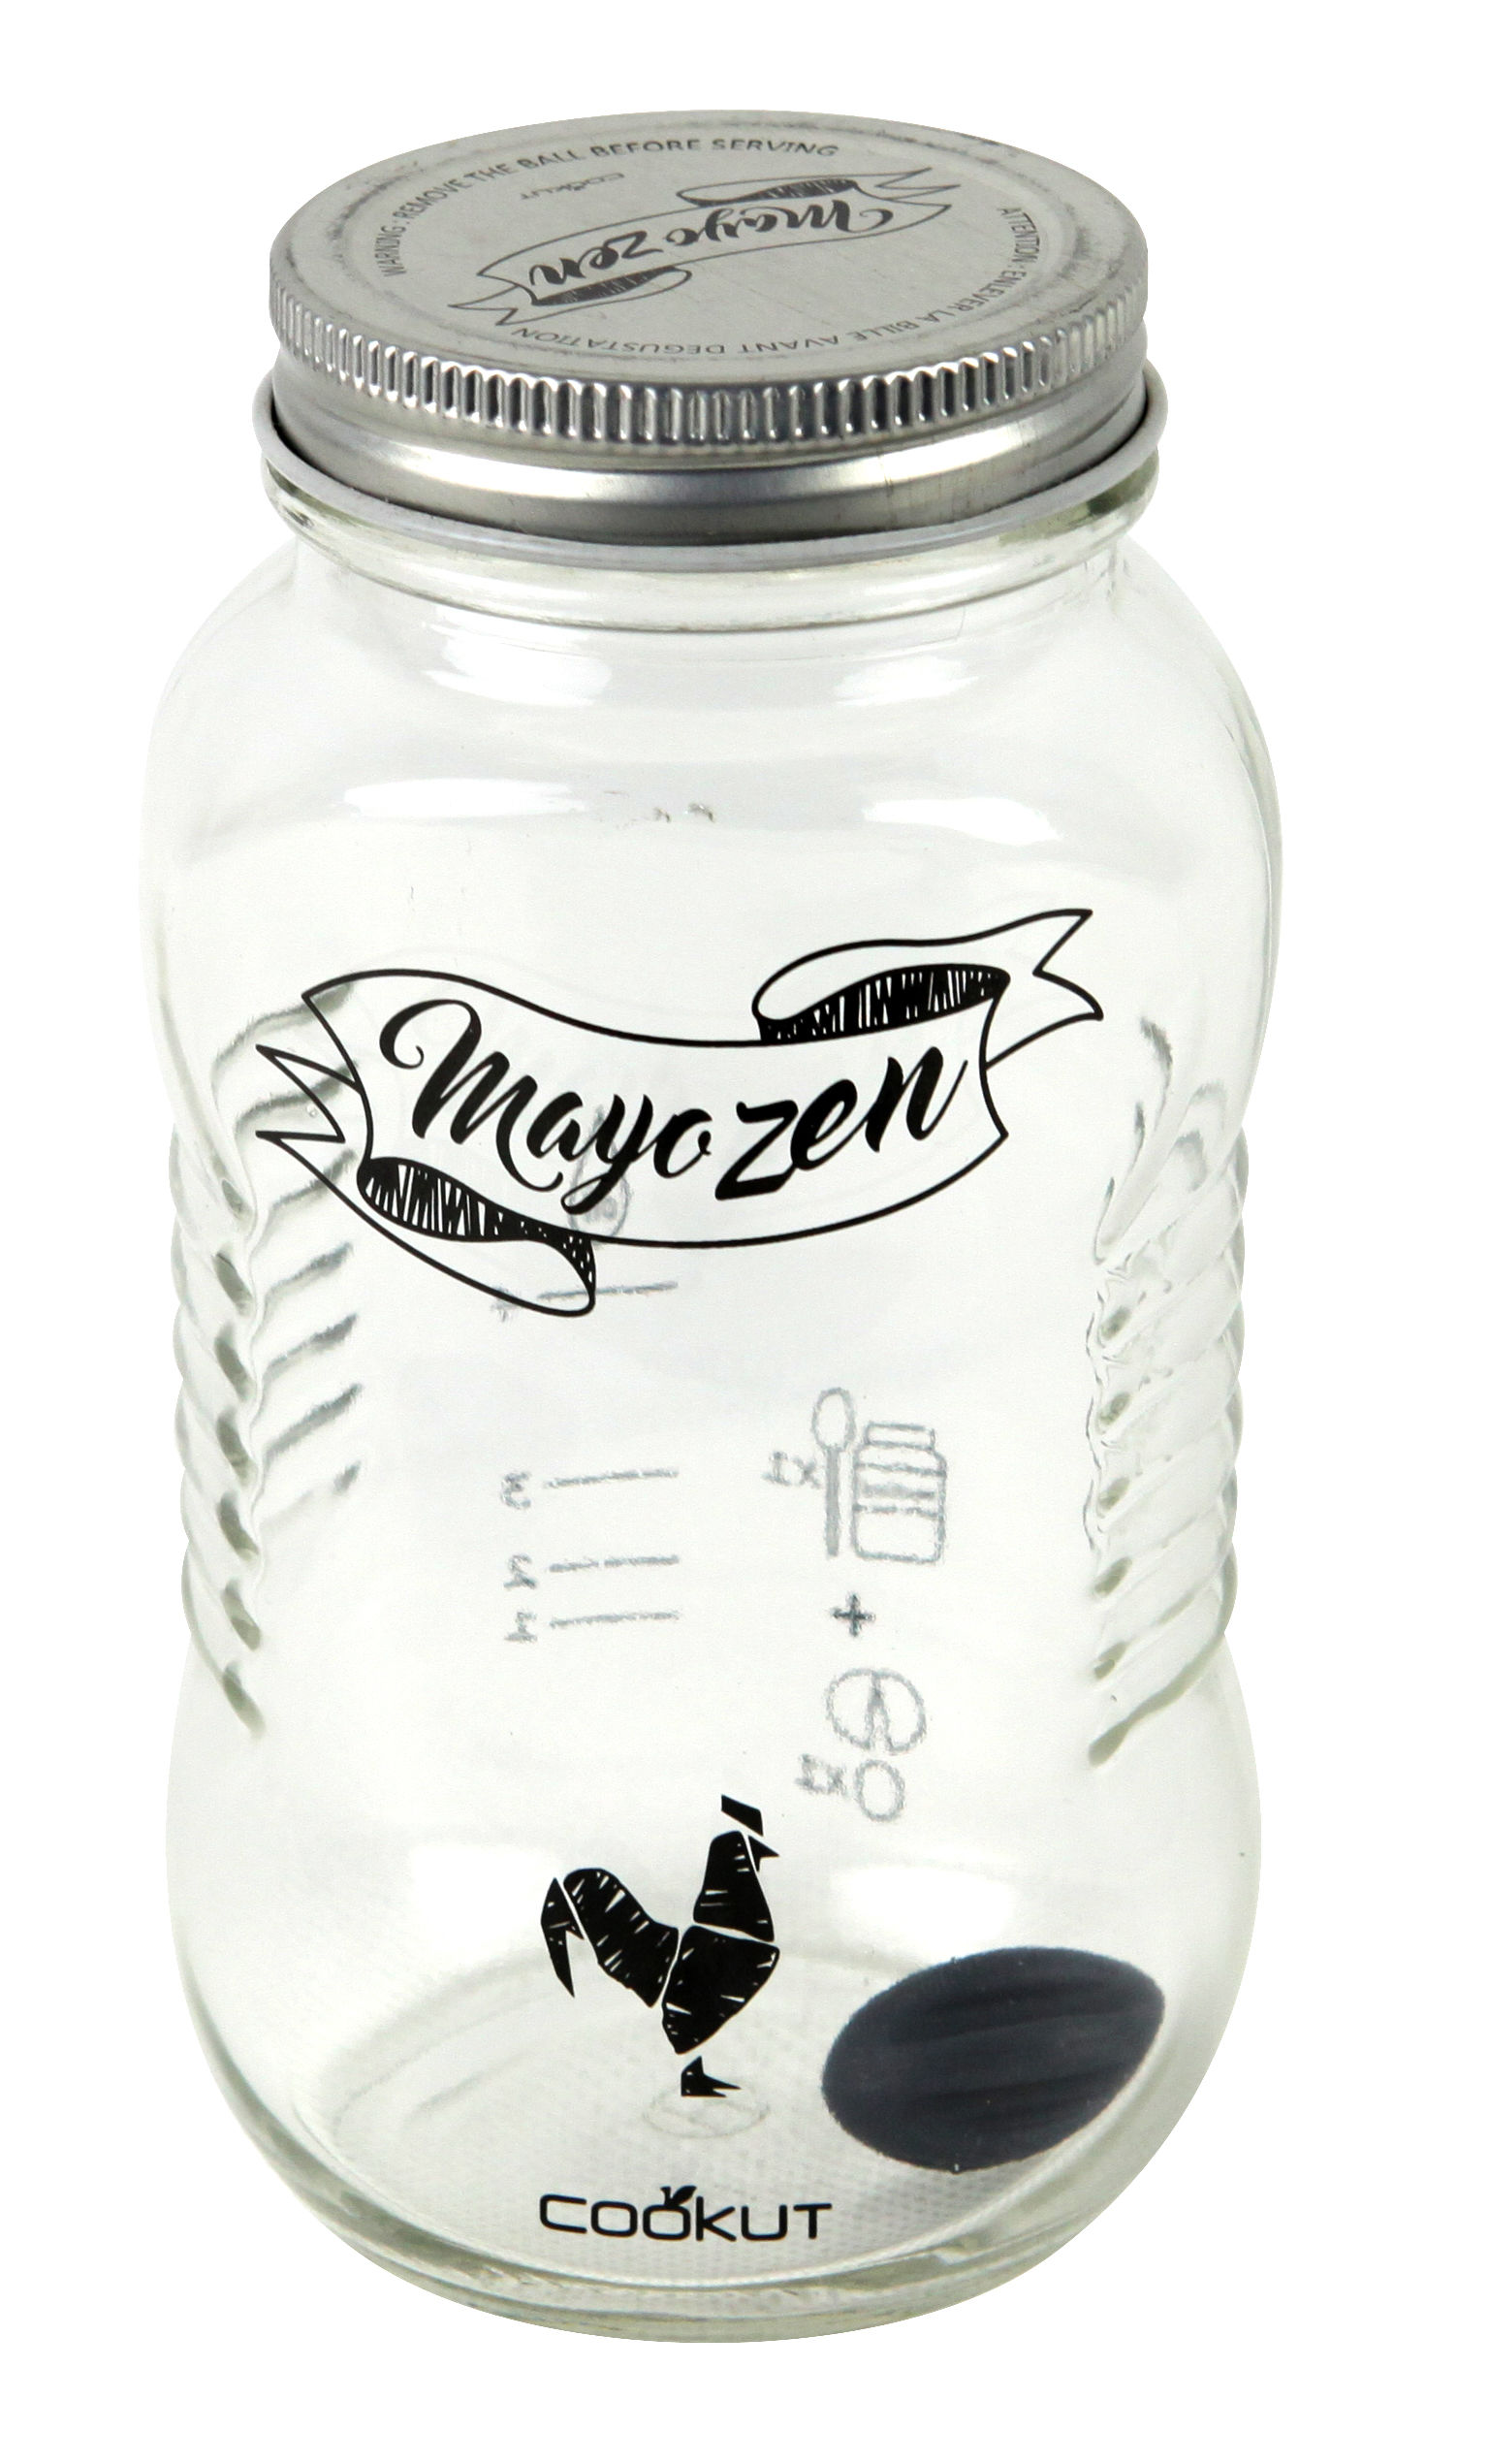 Kitchenware - Kitchen Equipment - Mayozen Shaker - For homemade mayonnaise by Cookut - Transparent / Silver - Glass, Metal, Silicone